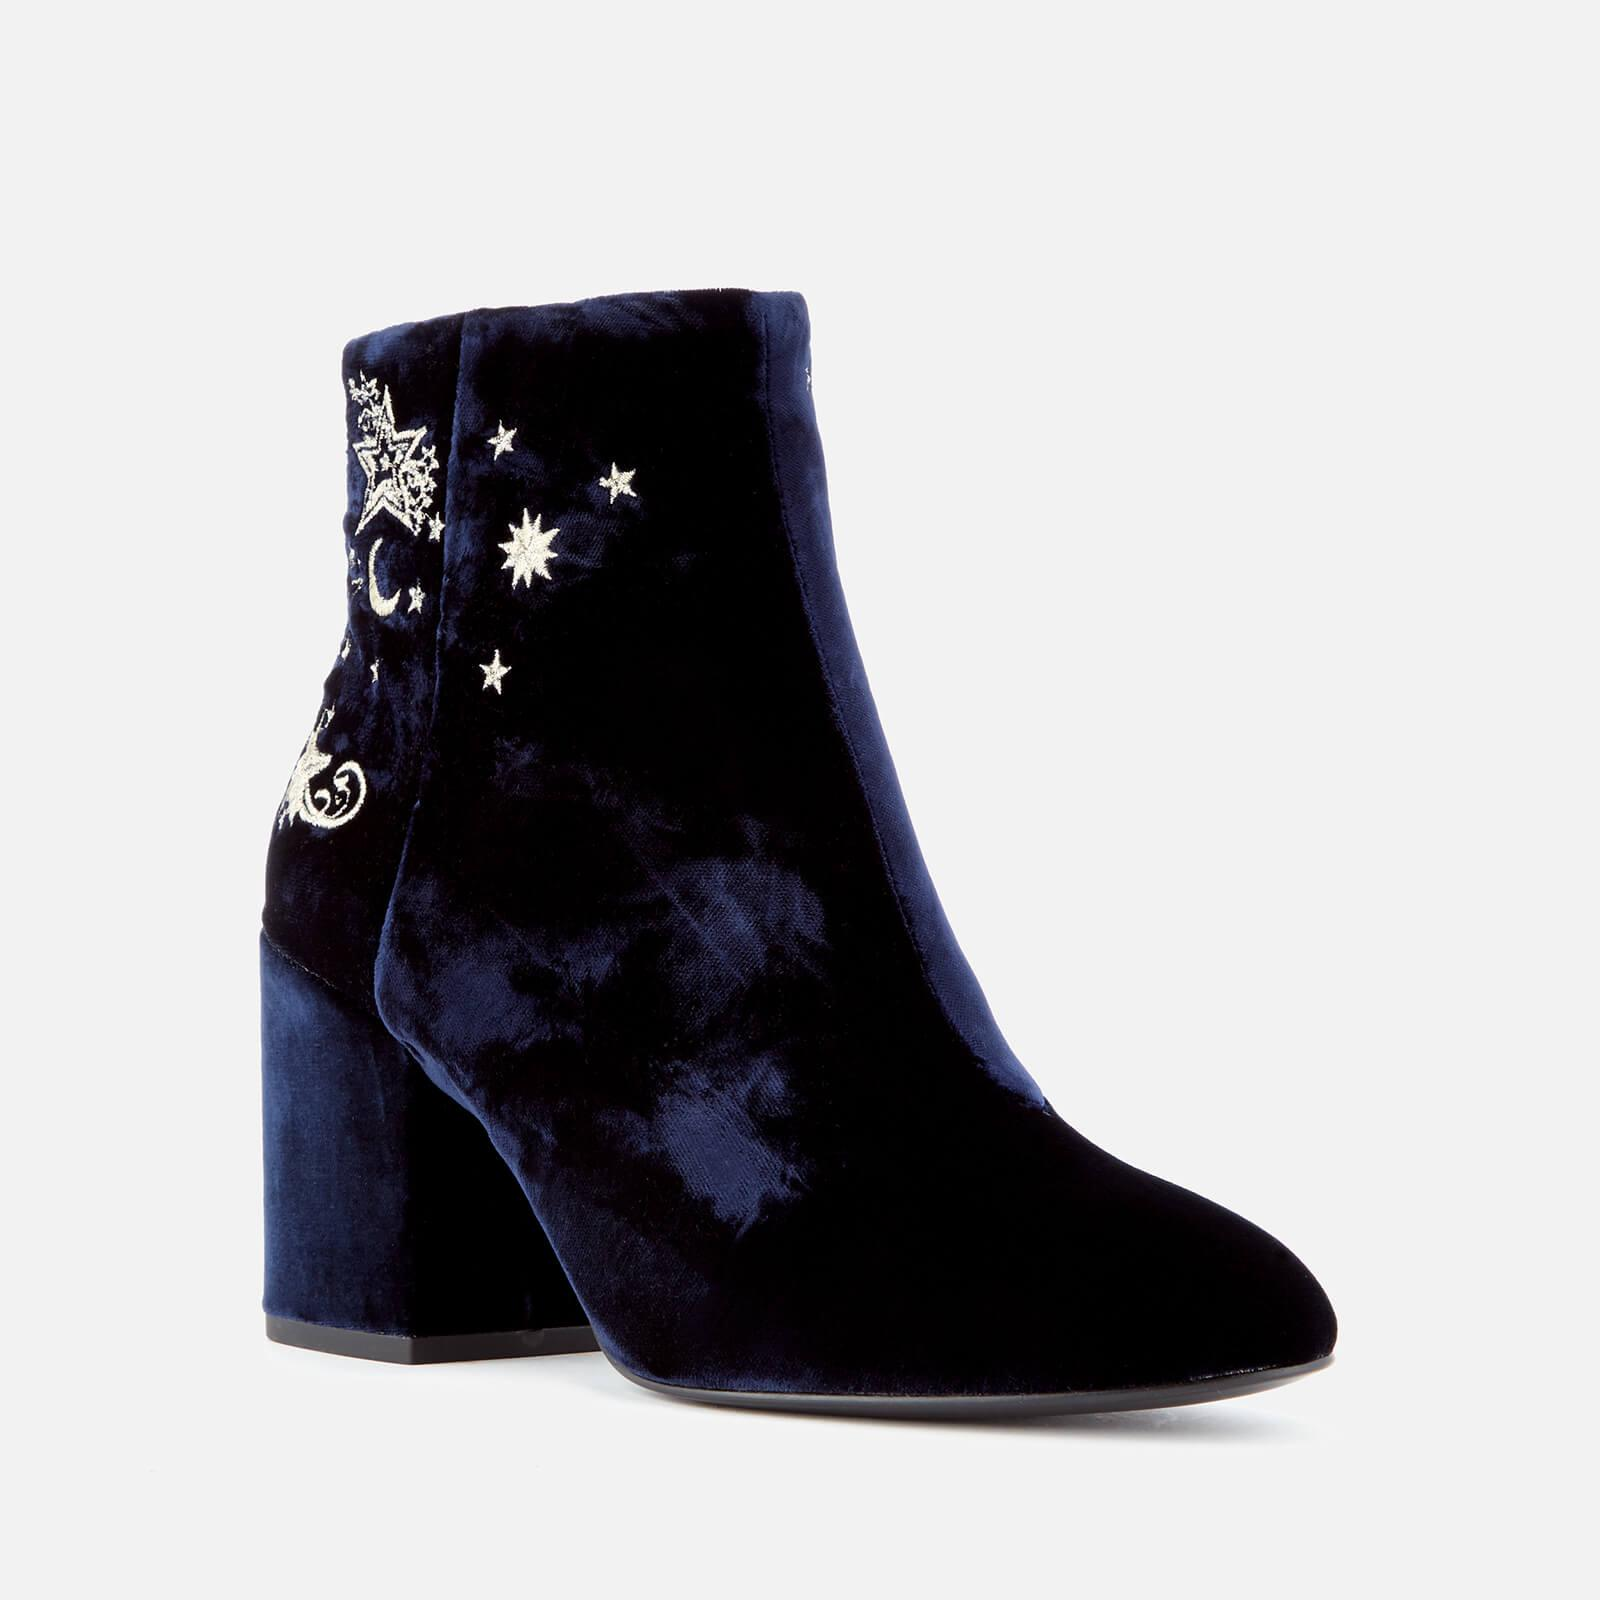 Ash Women's Elixir Velvet Heeled Ankle Boots Clearance Footaction Buy Cheap Order Buy Cheap Newest Pay With Visa For Sale katVVznDr